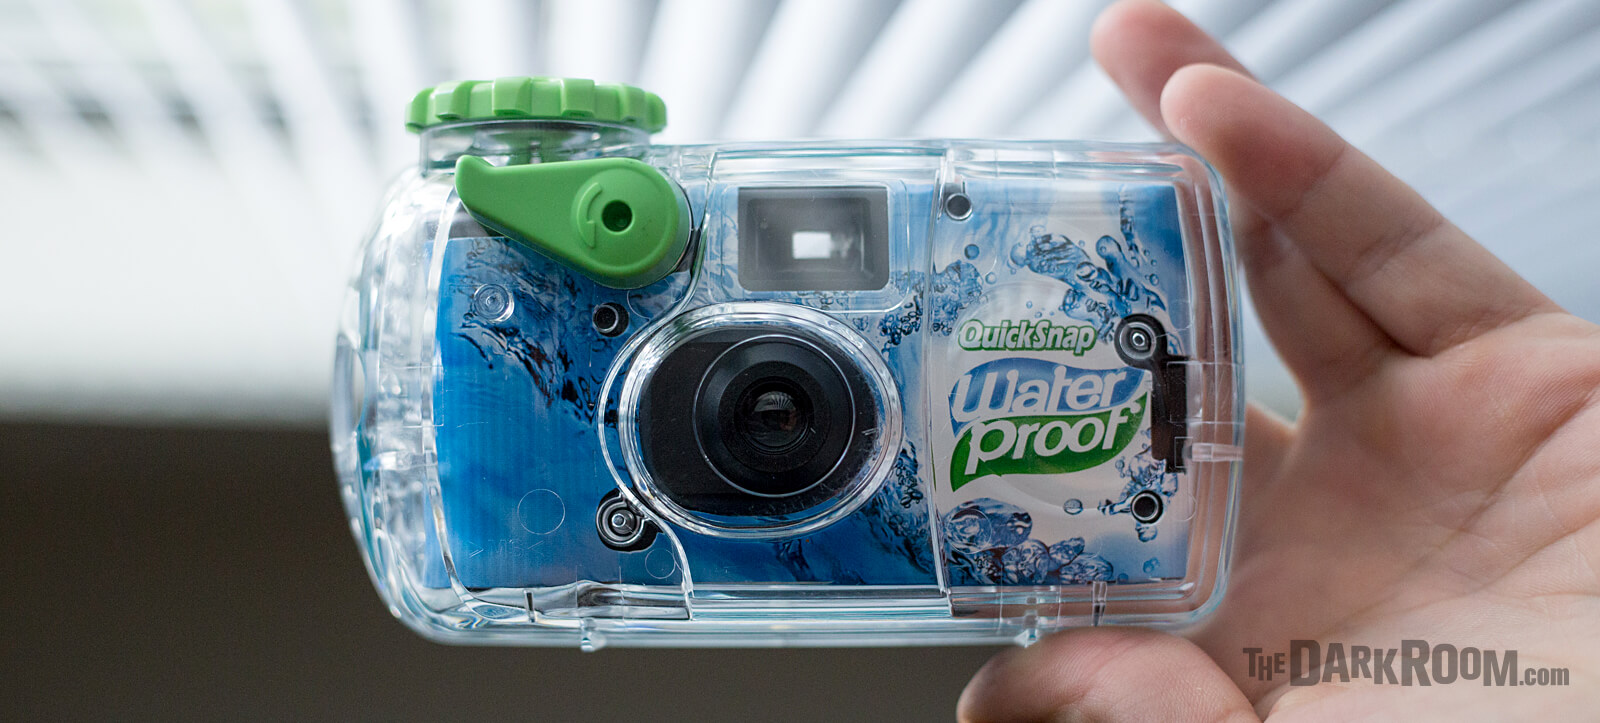 FujiFilm Waterproof Quick Snap Disposable Camera